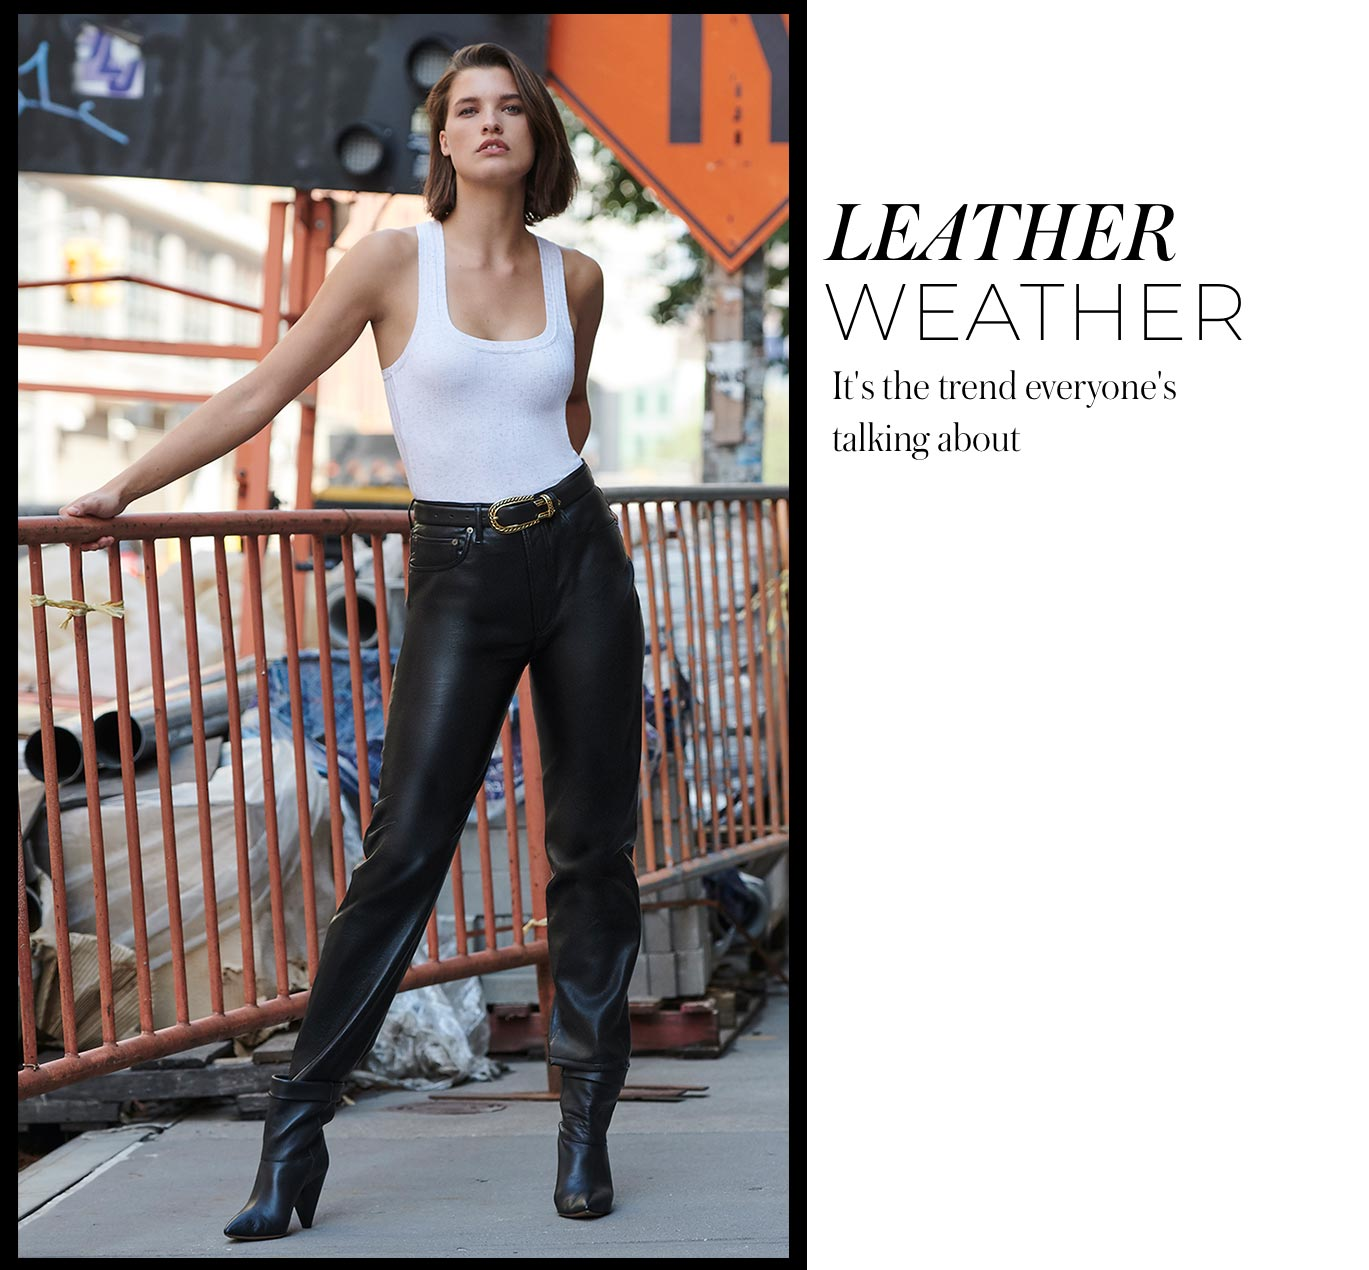 Leather Weather It's the trend everyone's talking about